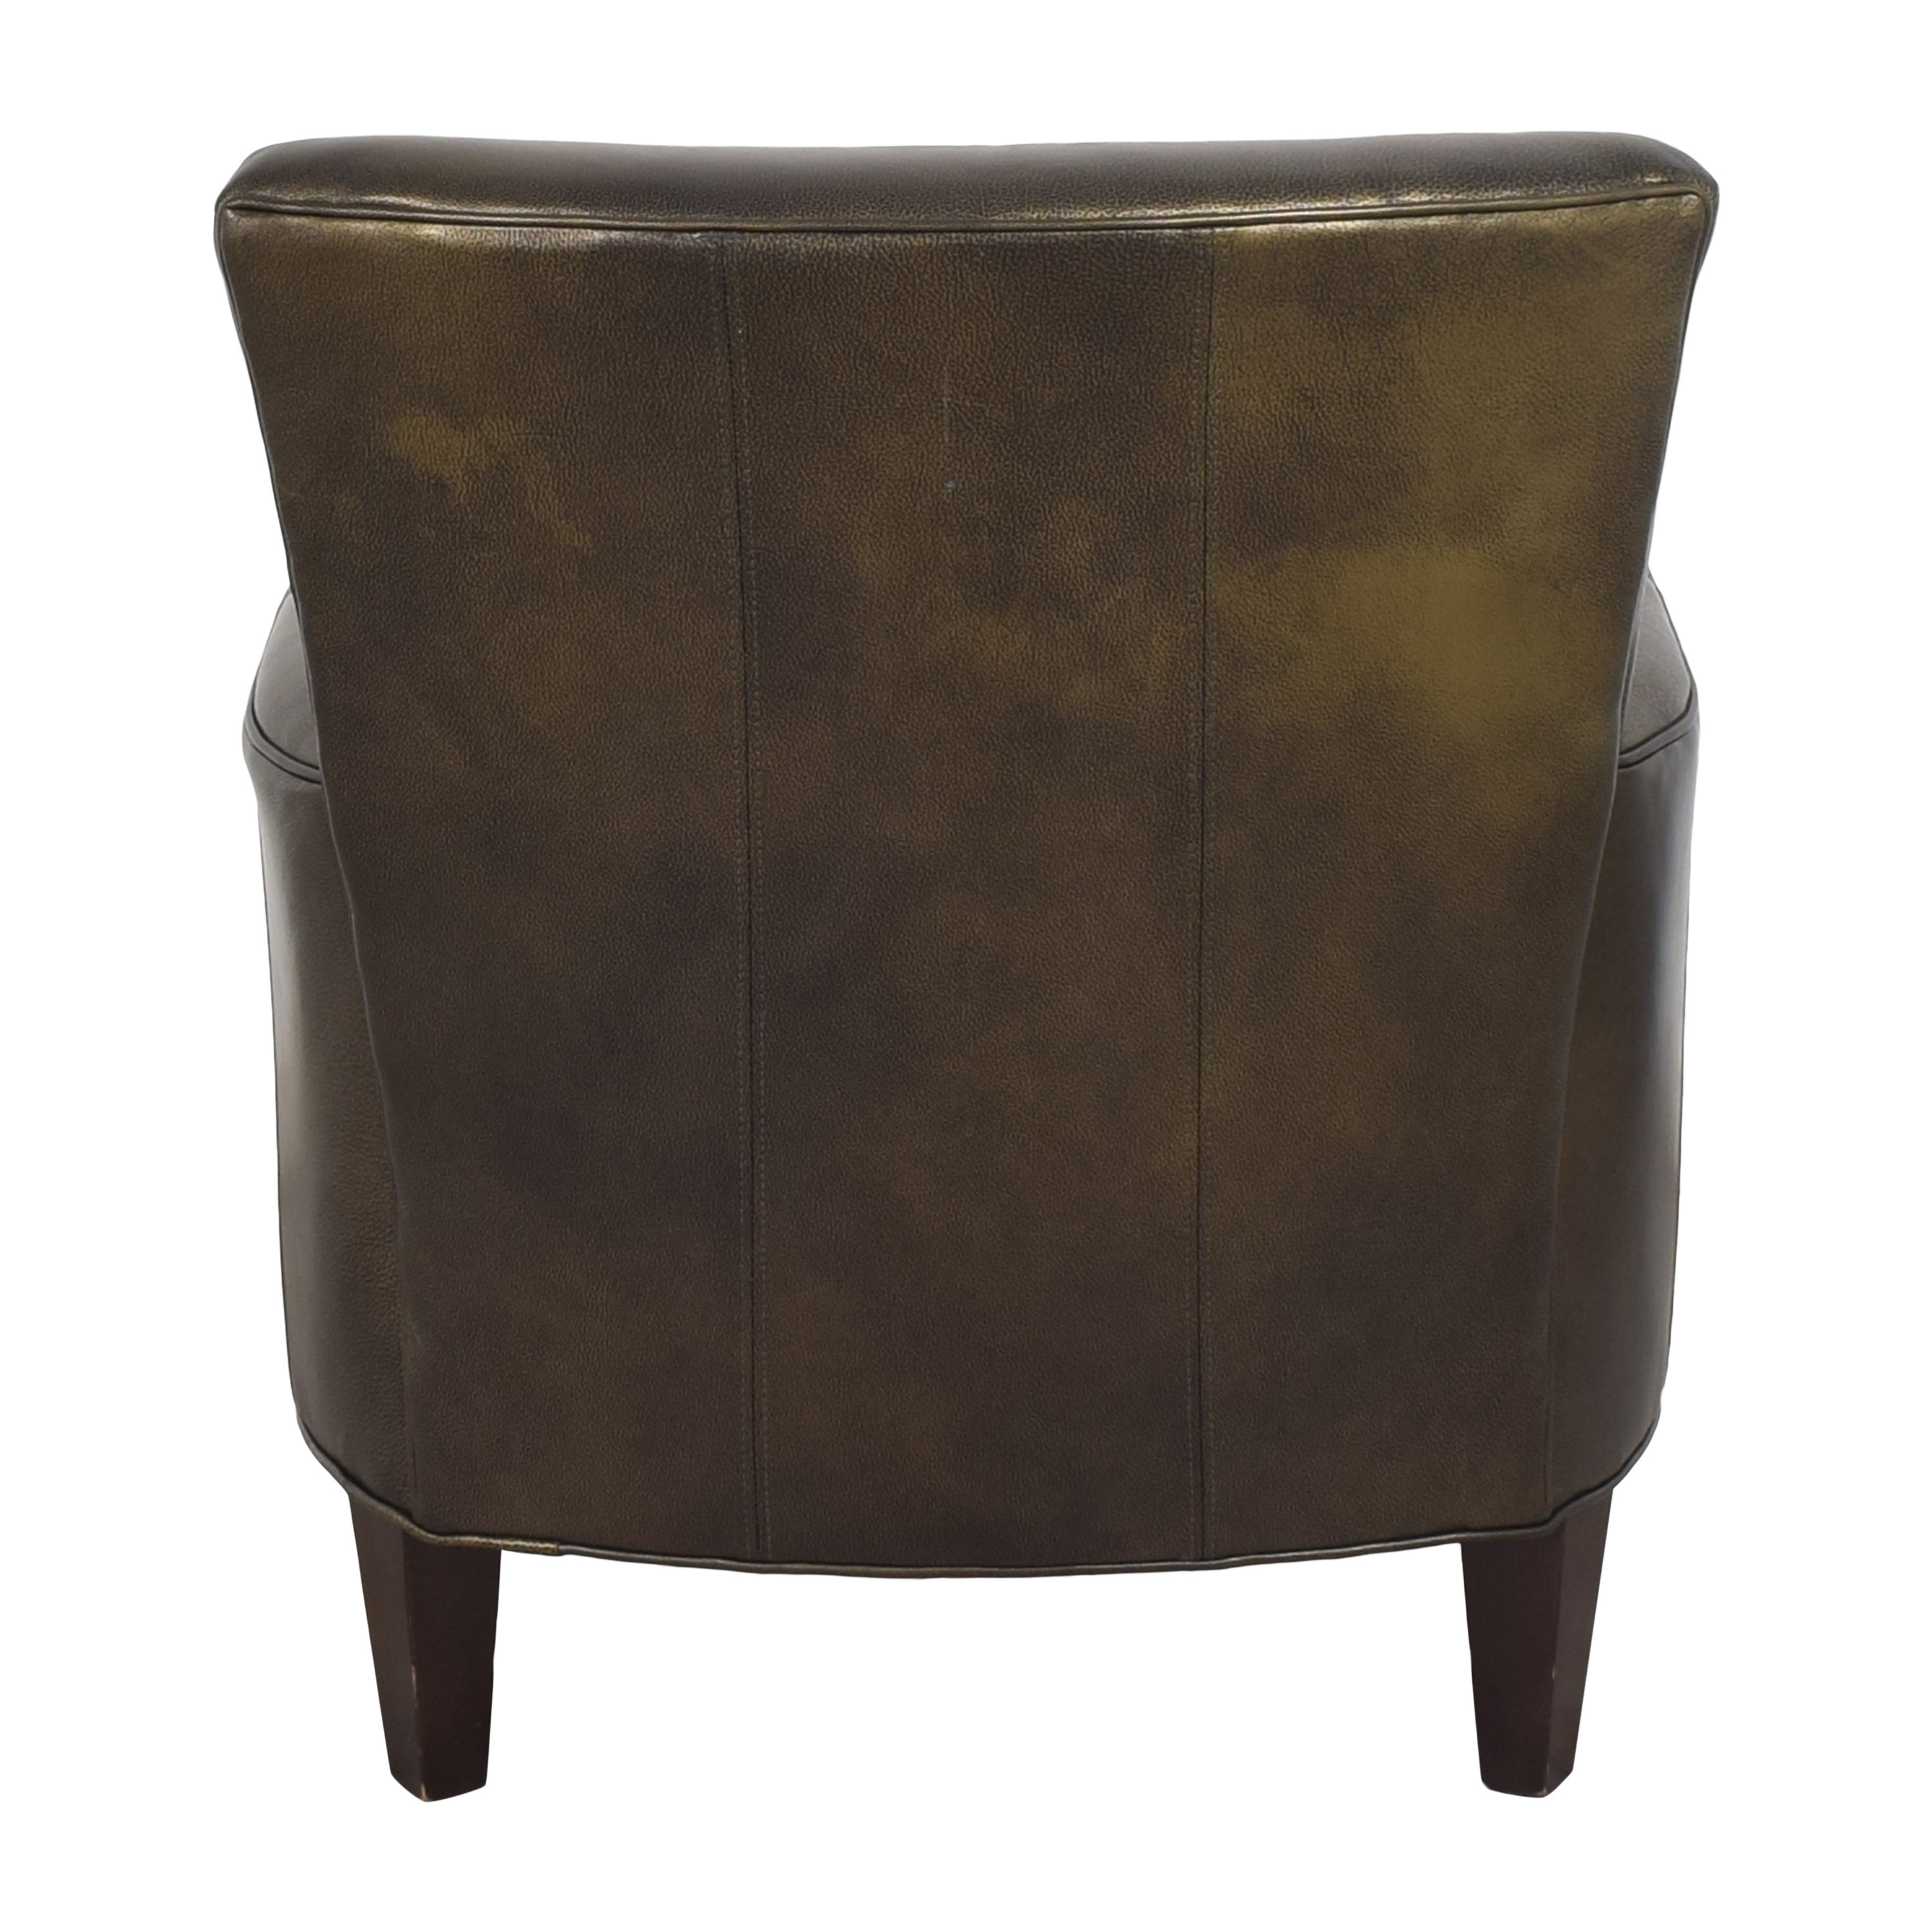 Ethan Allen Tufted Wingback Chair / Accent Chairs